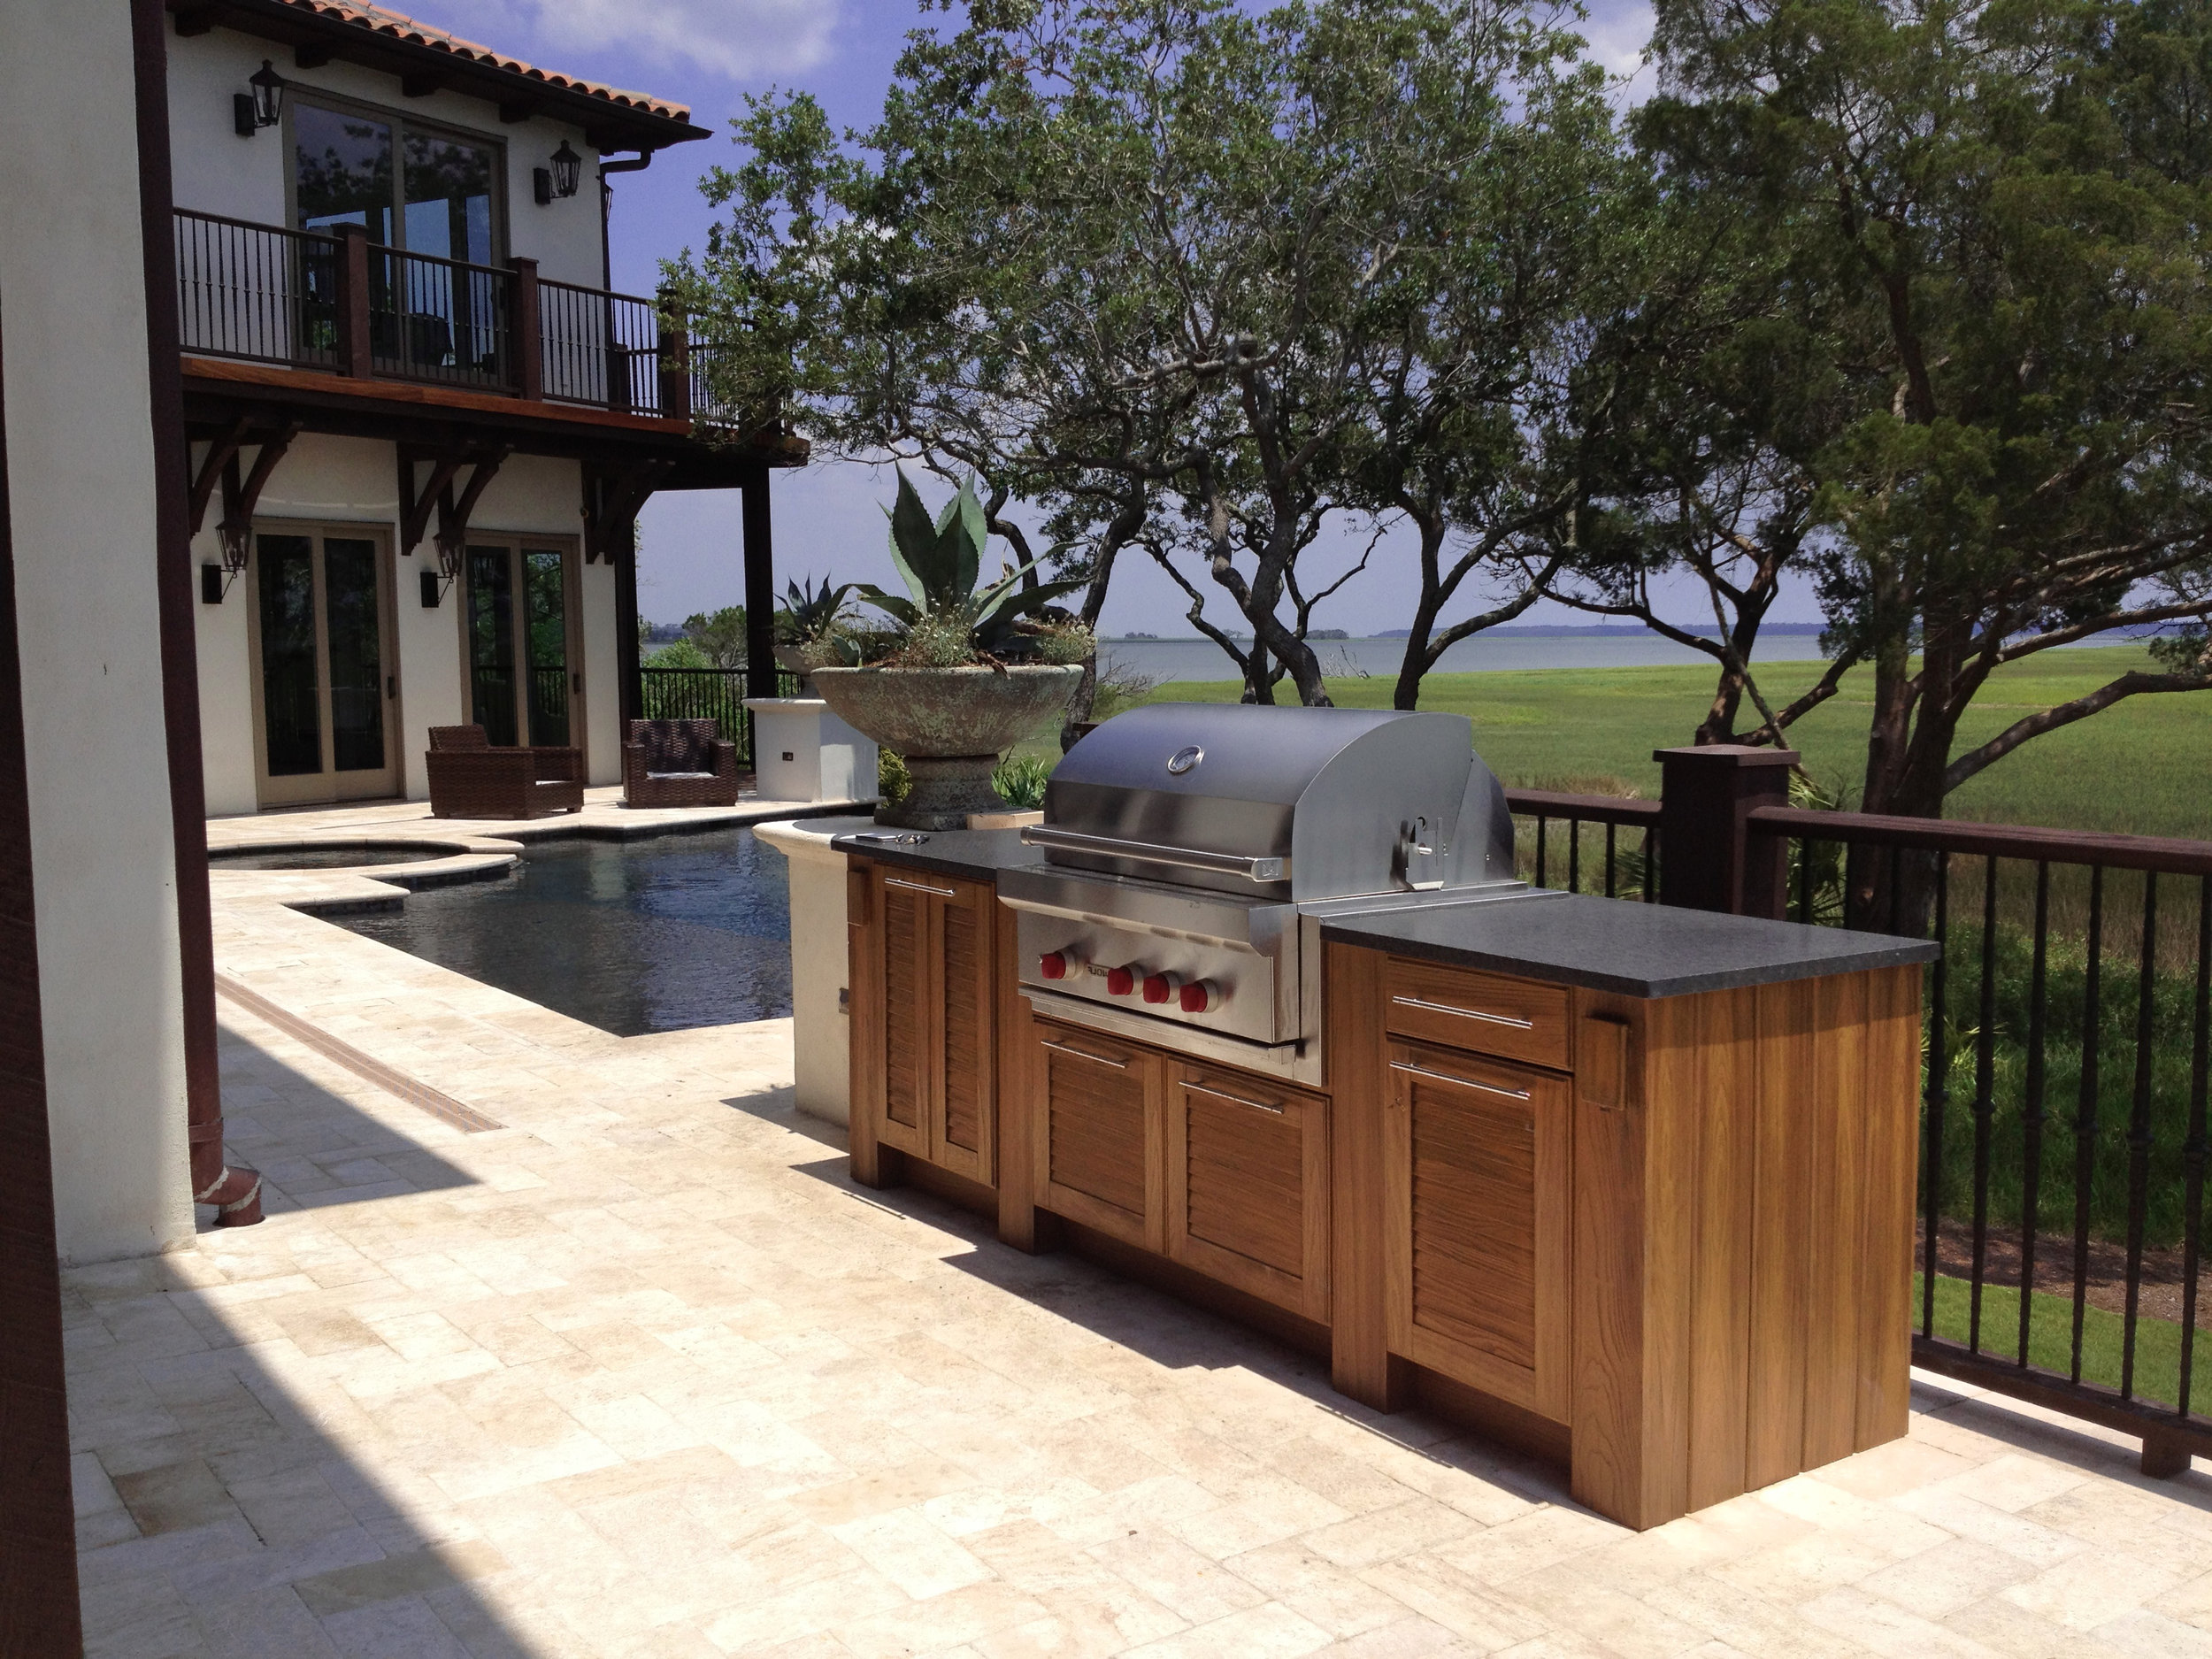 Alpha Cabinetry and Design outdoor kitchen2.jpg